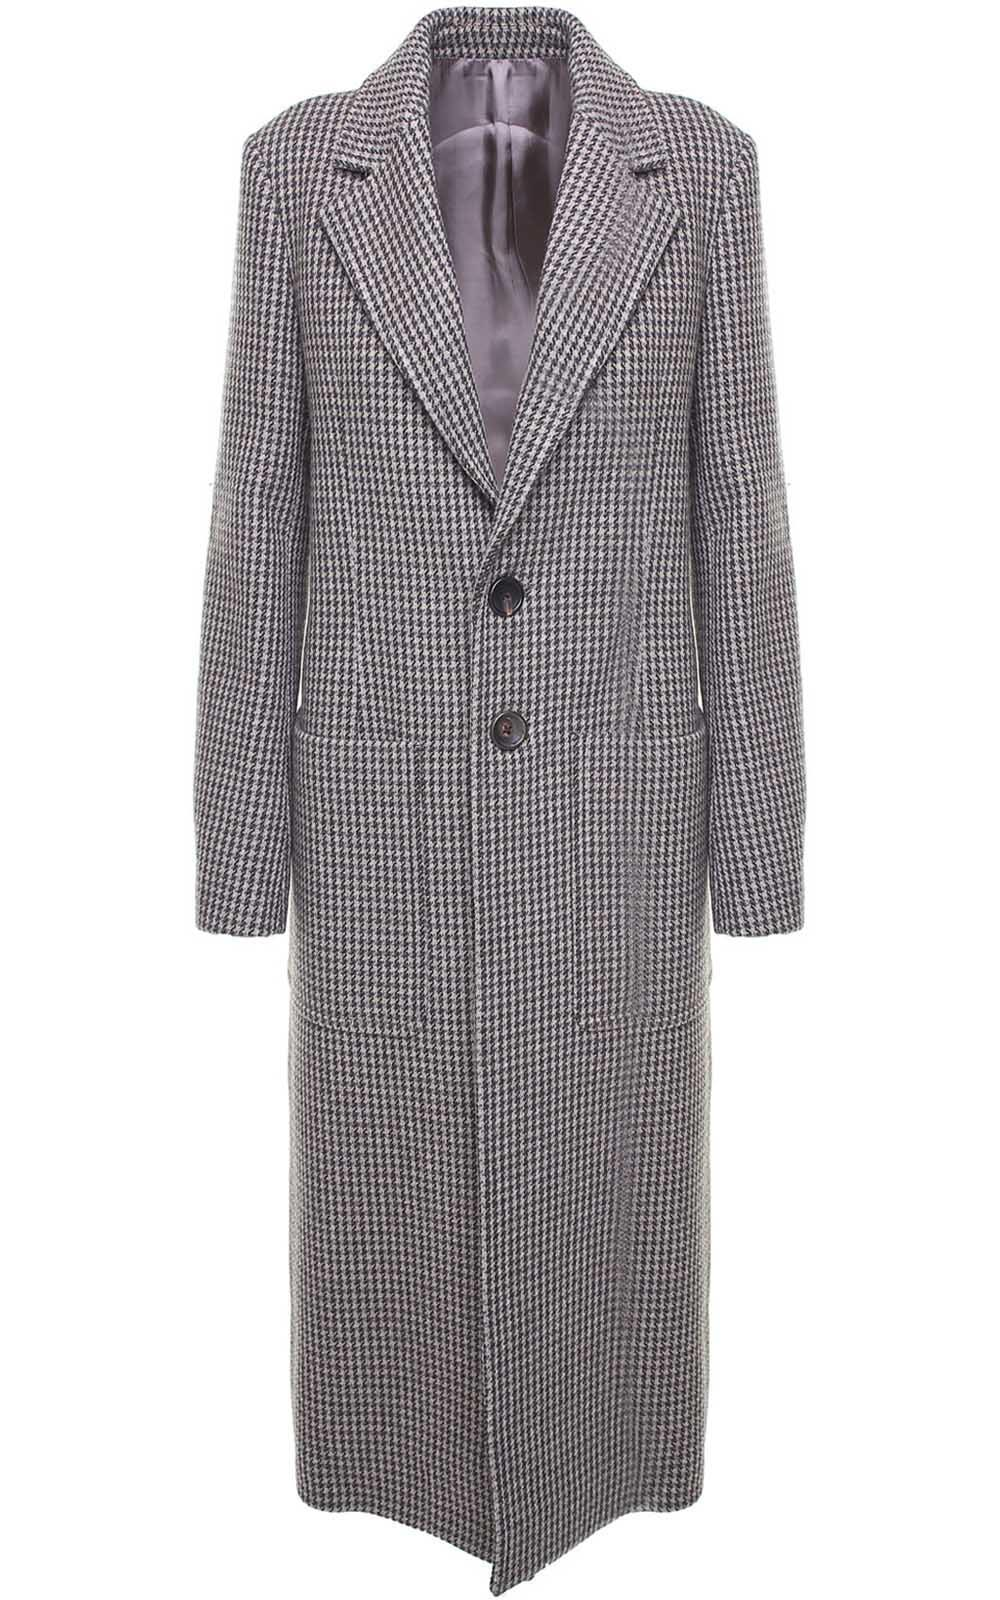 Joseph Marko Houndstooth Wool-blend Coat